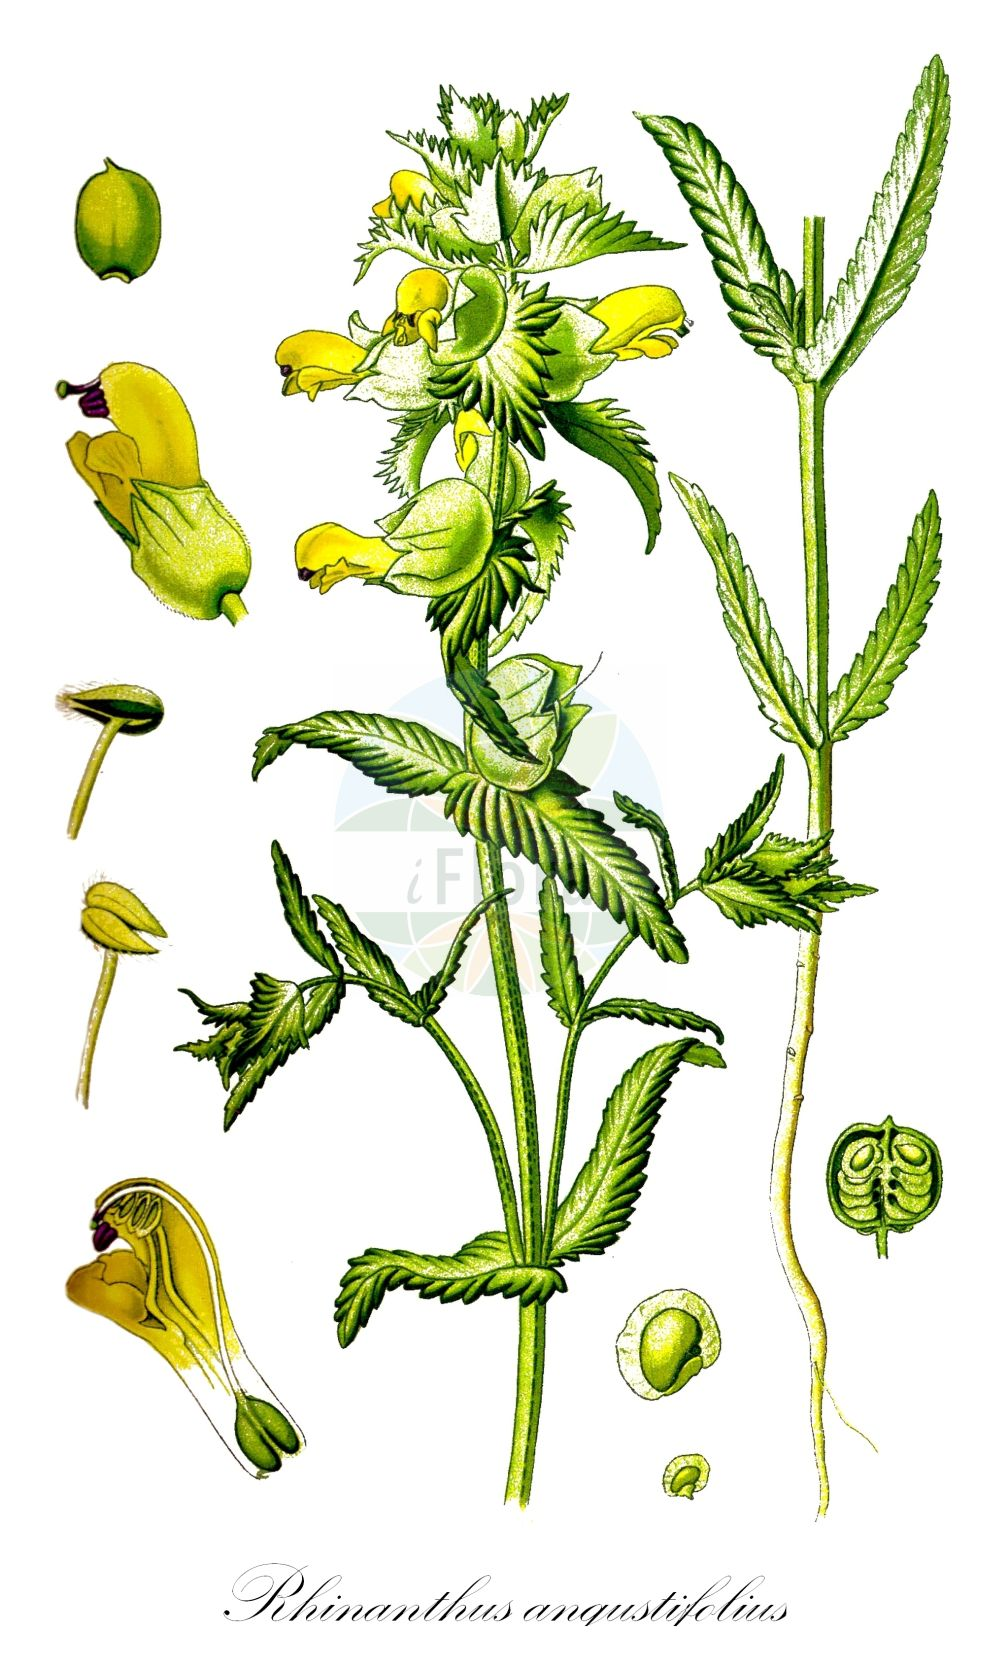 Historische Abbildung von Rhinanthus angustifolius (Acker-Klappertopf - Late-flowering Yellow Rattle). Das Bild zeigt Blatt, Bluete, Frucht und Same. ---- Historical Drawing of Rhinanthus angustifolius (Acker-Klappertopf - Late-flowering Yellow Rattle).The image is showing leaf, flower, fruit and seed.(Rhinanthus angustifolius,Acker-Klappertopf,Late-flowering Yellow Rattle,Alectorolophus angustifolius,Alectorolophus glaber,Alectorolophus major,Alectorolophus major Rchb. subsp.,Alectorolophus serotinus,Rhinanthus glaber,Rhinanthus paludosus,Rhinanthus serotinus,Rhinanthus serotinus subsp. polycladus,Grosser Klappertopf,Greater Yellow Rattle,Narrow-leaved Yellow Rattle,Southern Yellow Rattle,Rhinanthus,Klappertopf,Yellow Rattle,Orobanchaceae,Sommerwurzgewaechse,Broomrape family,Blatt,Bluete,Frucht,Same,leaf,flower,fruit,seed,Thomé (1885))